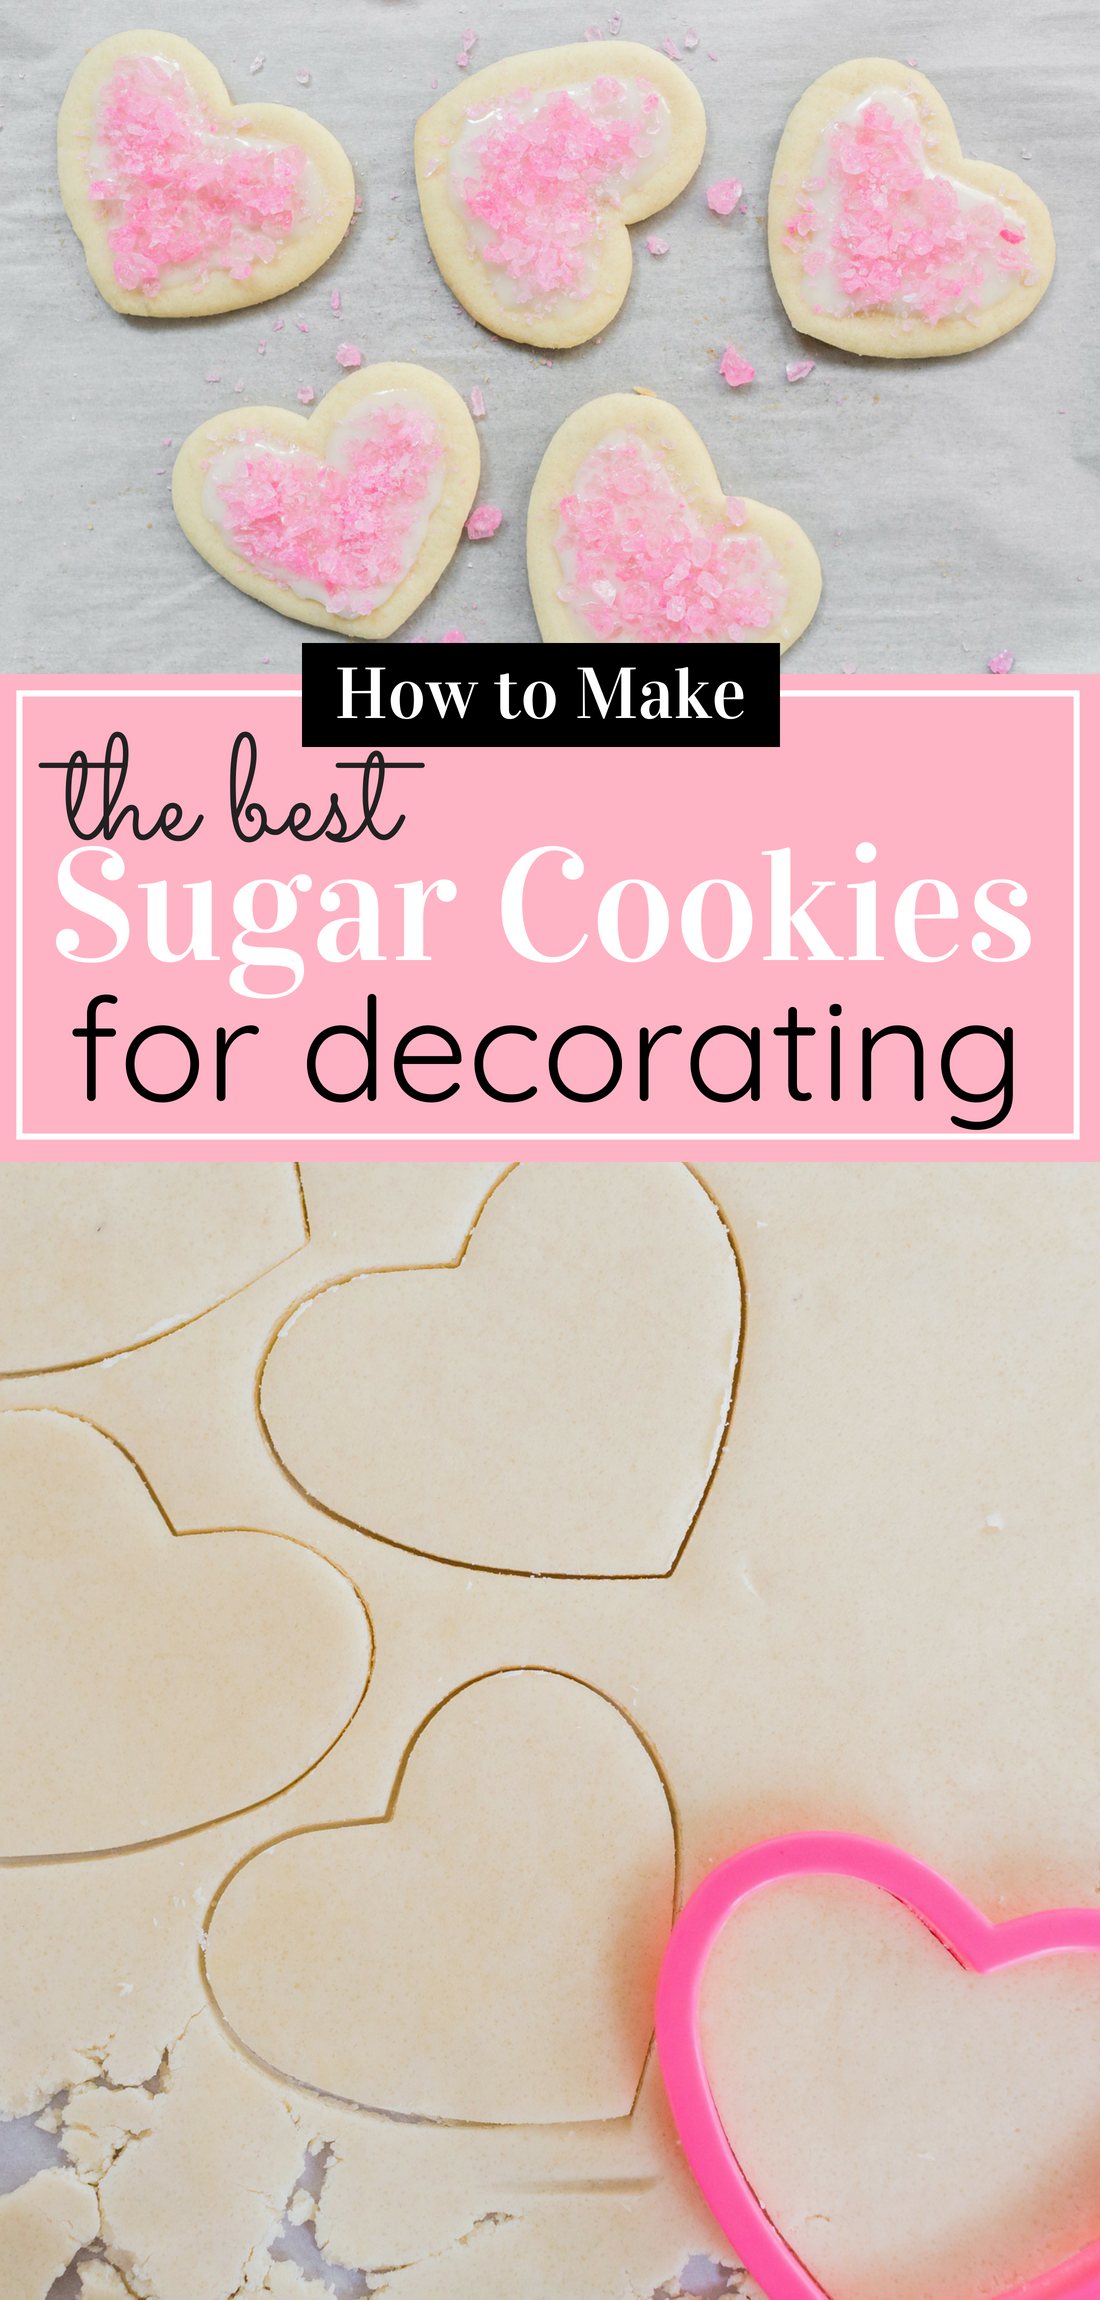 The Best Sugar Cookies for Decorating; i.e., they hold up to decorations like frosting and sprinkles (Psst ... these adorable cookies are covered in pink rock candy!) and taste great! Click through for the recipe. #sugarcookies #sugarcookiesfordecorating #decoratingcookies #decoratedsugarcookies | glitterinc.com | @glitterinc